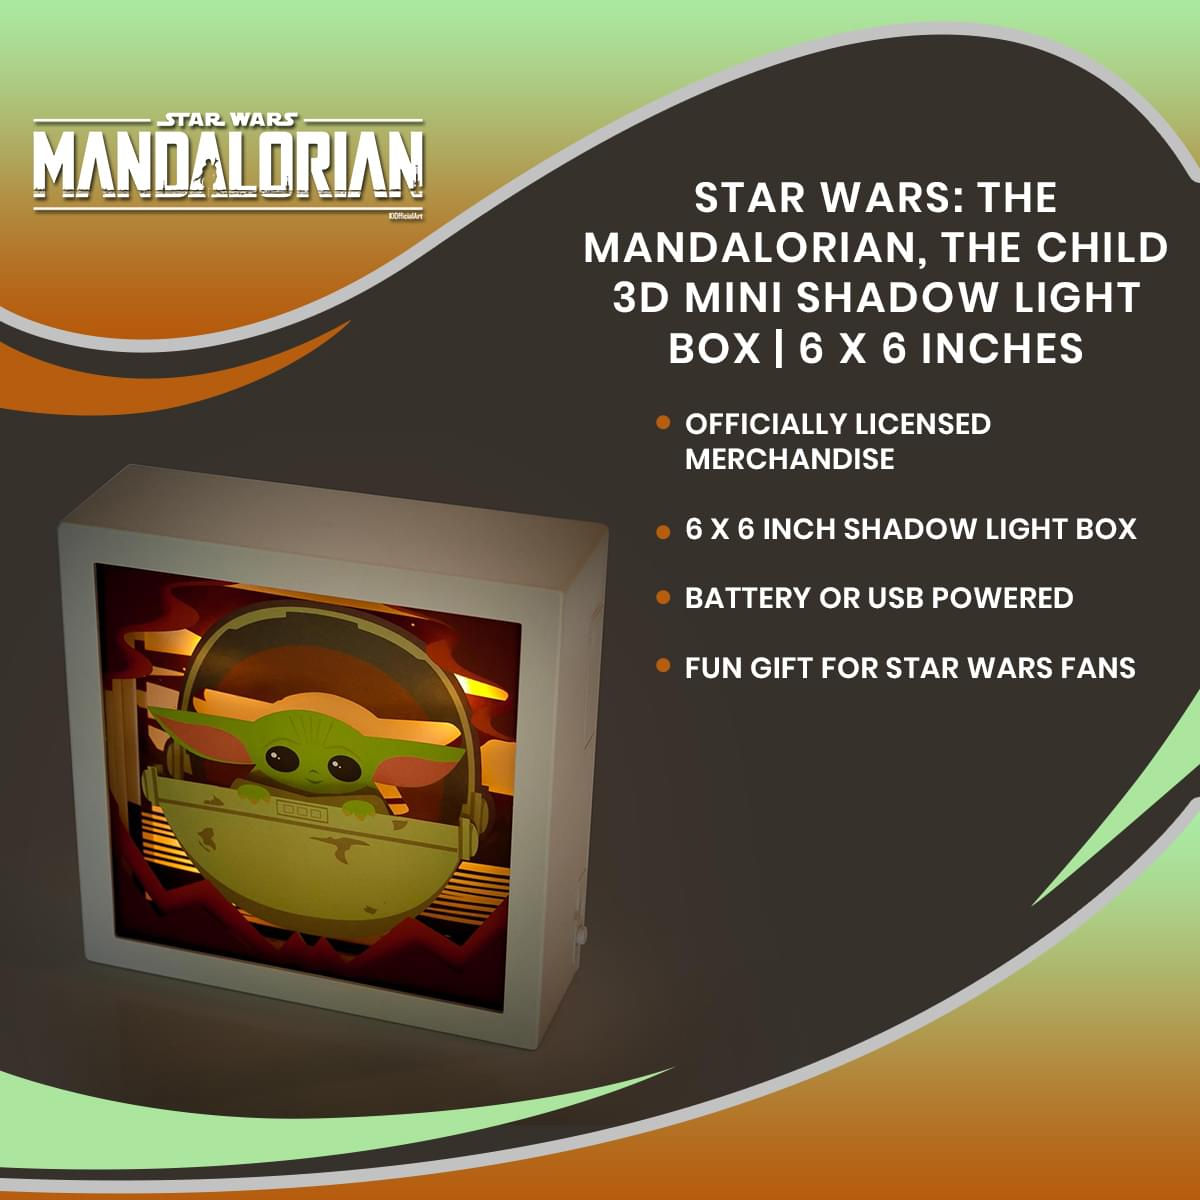 Star Wars: The Mandalorian, The Child 3D Mini Shadow Light Box | 6 x 6 Inches